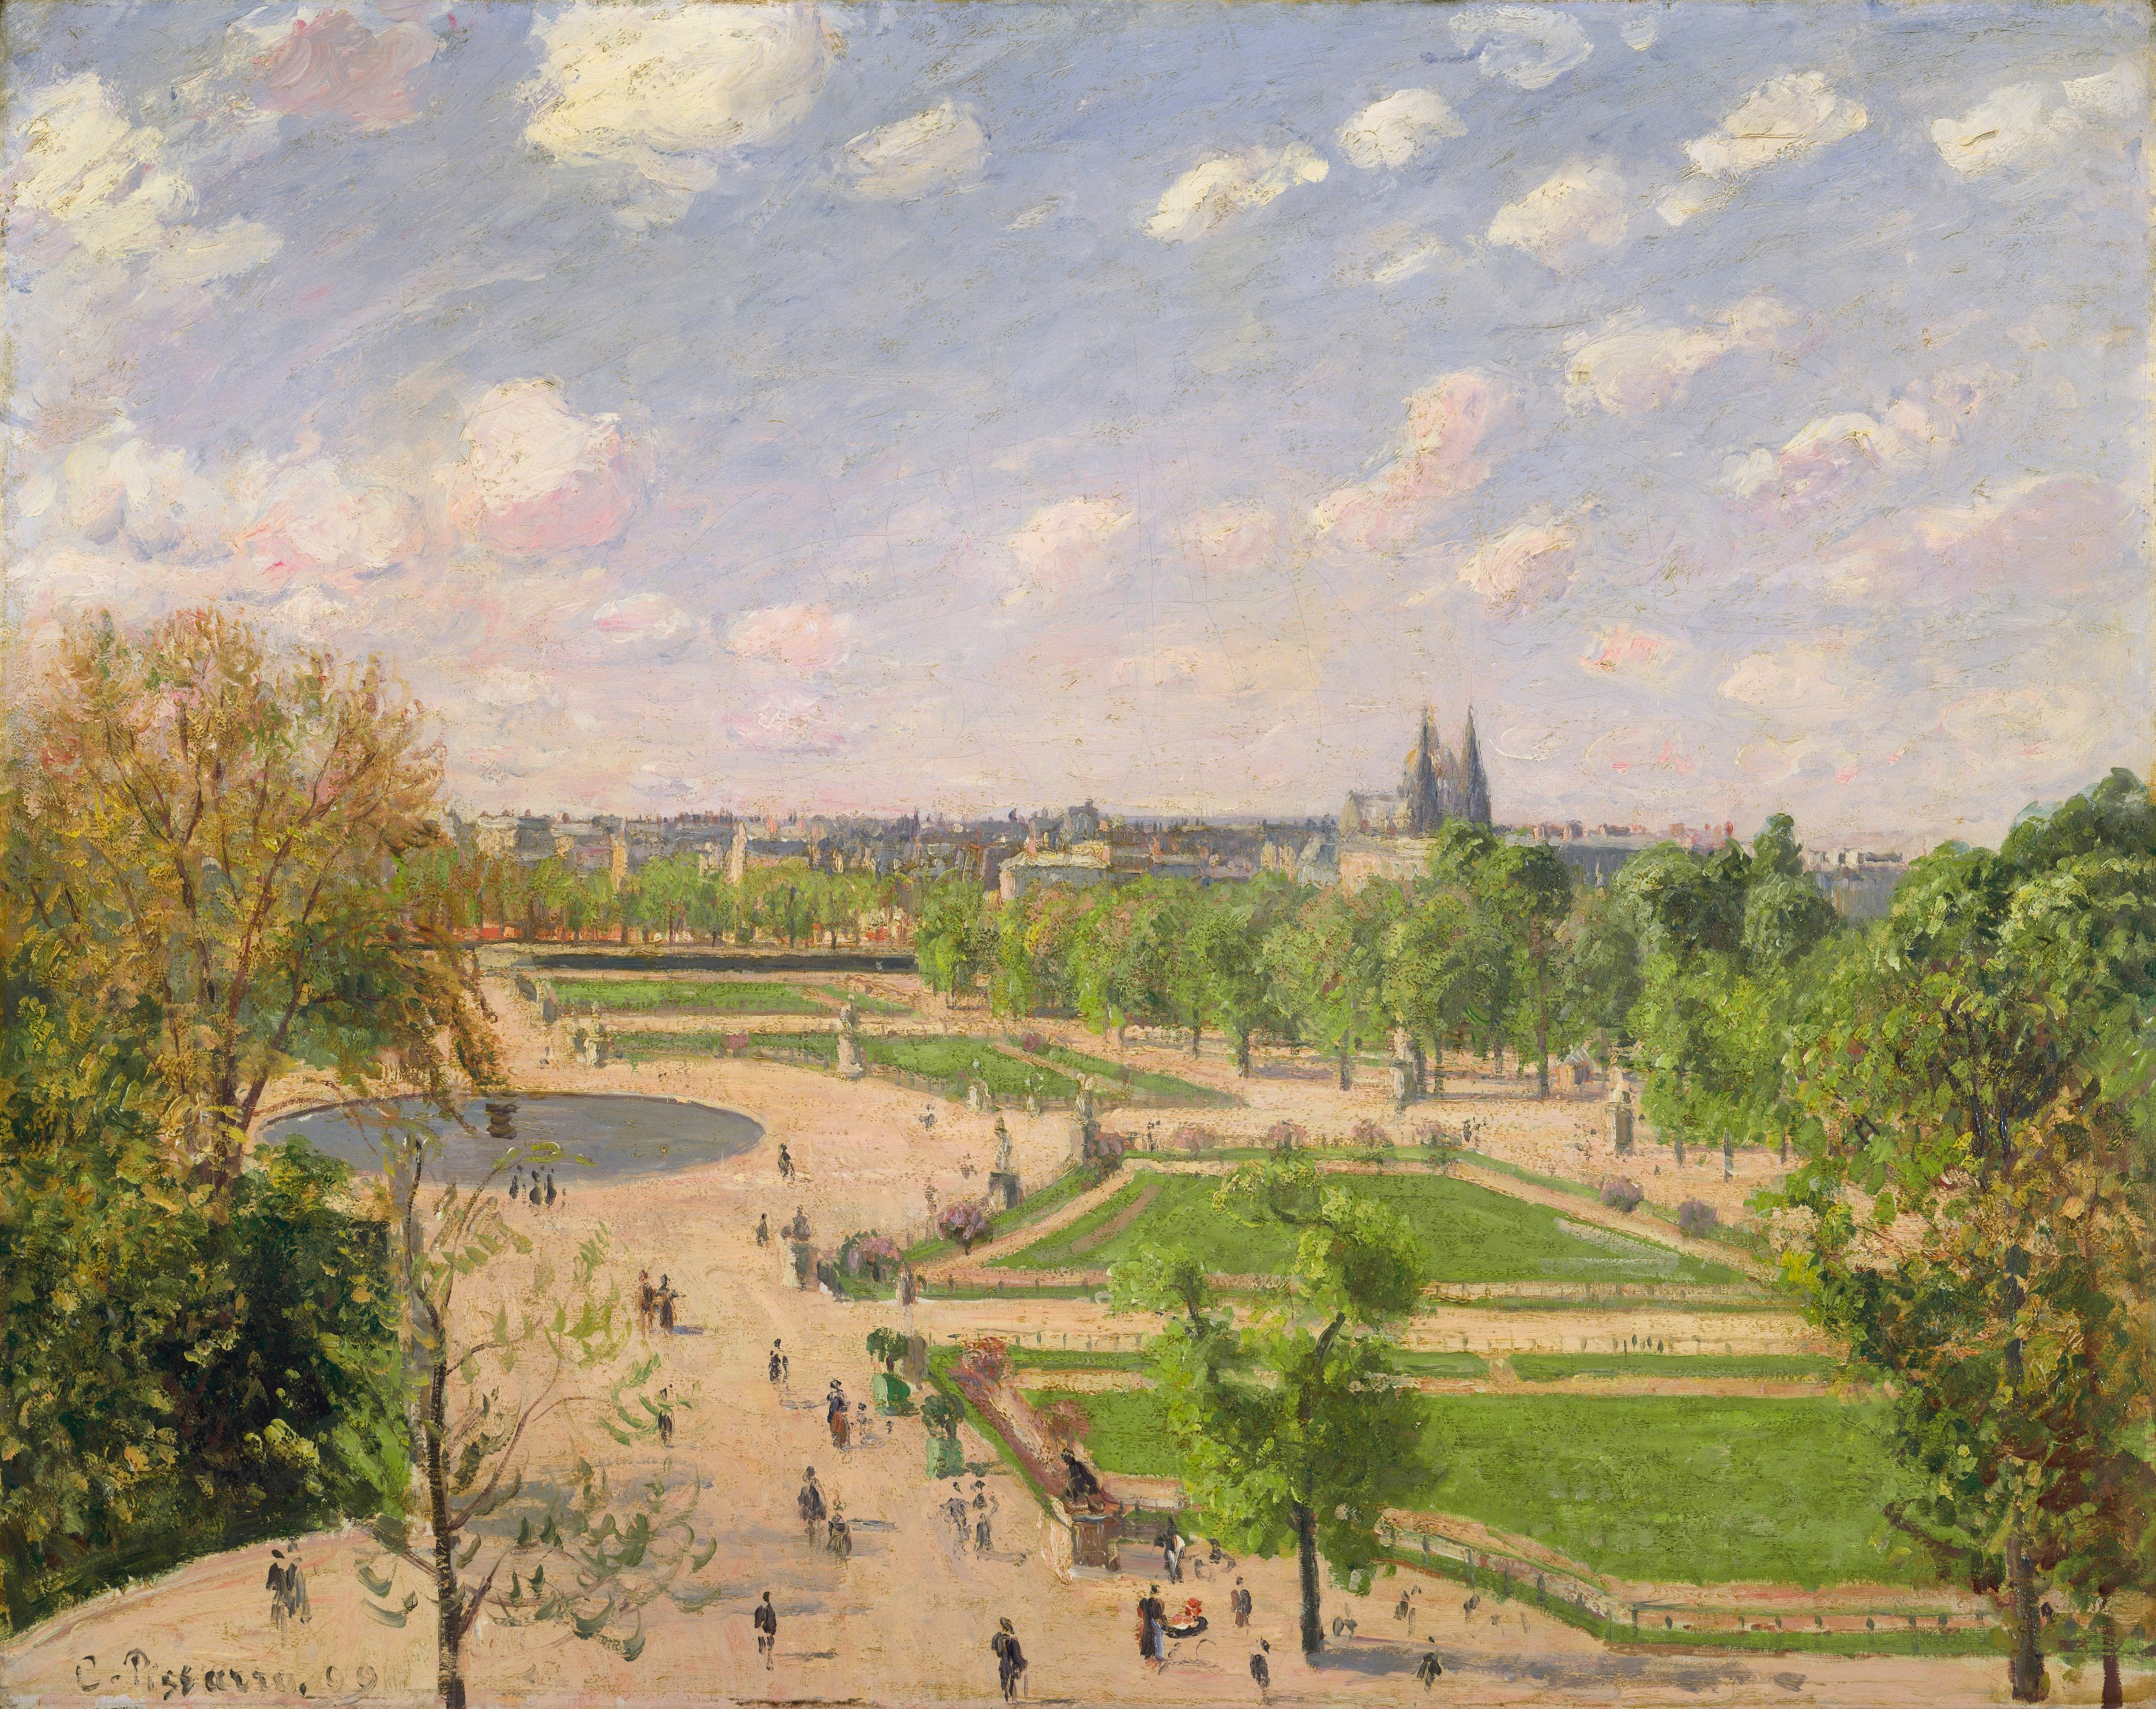 Camille_Pissarro%2C_The_Garden_of_the_Tuileries_on_a_Spring_Morning%2C_1899.jpg